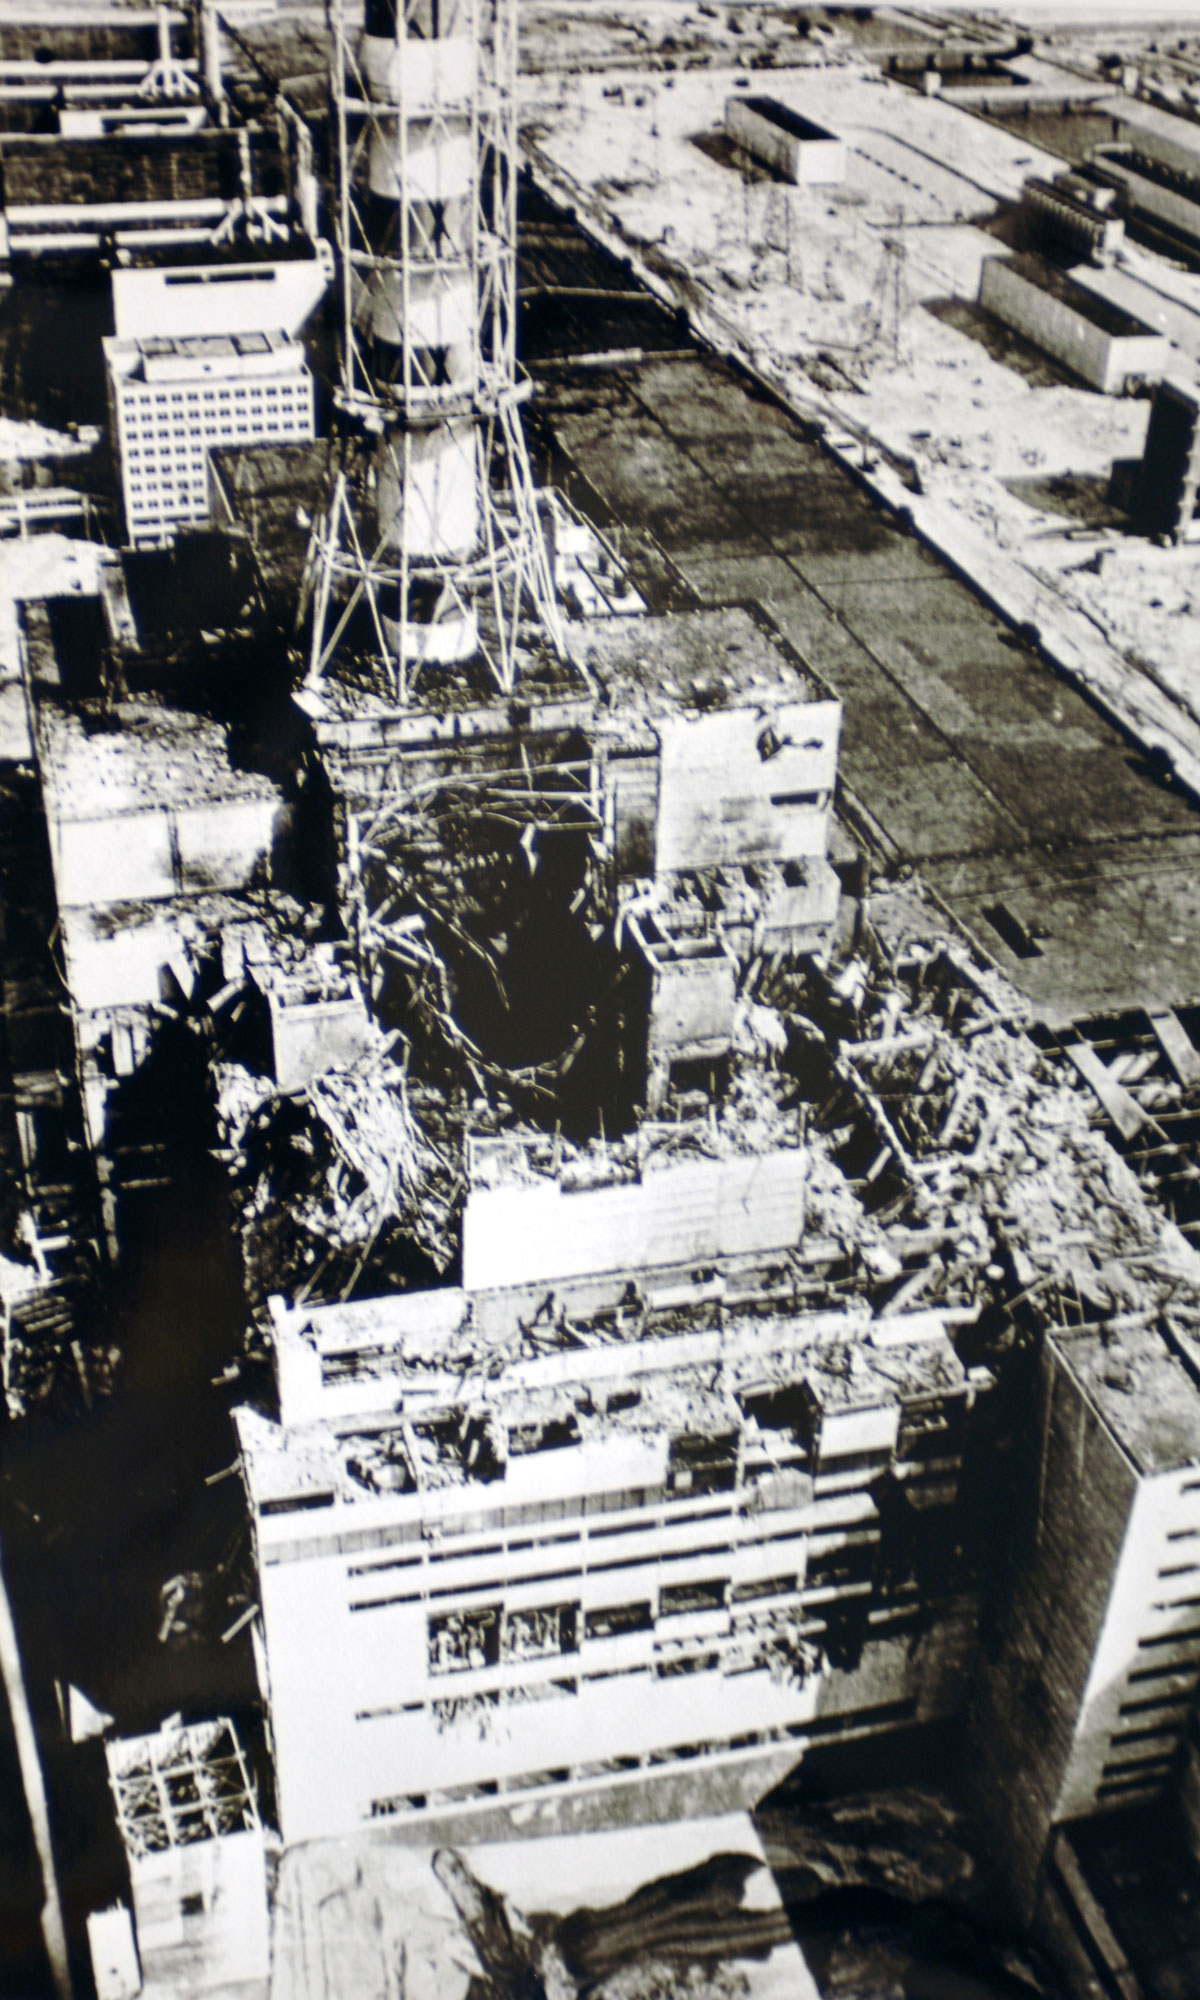 Chernobyl after catastrophe